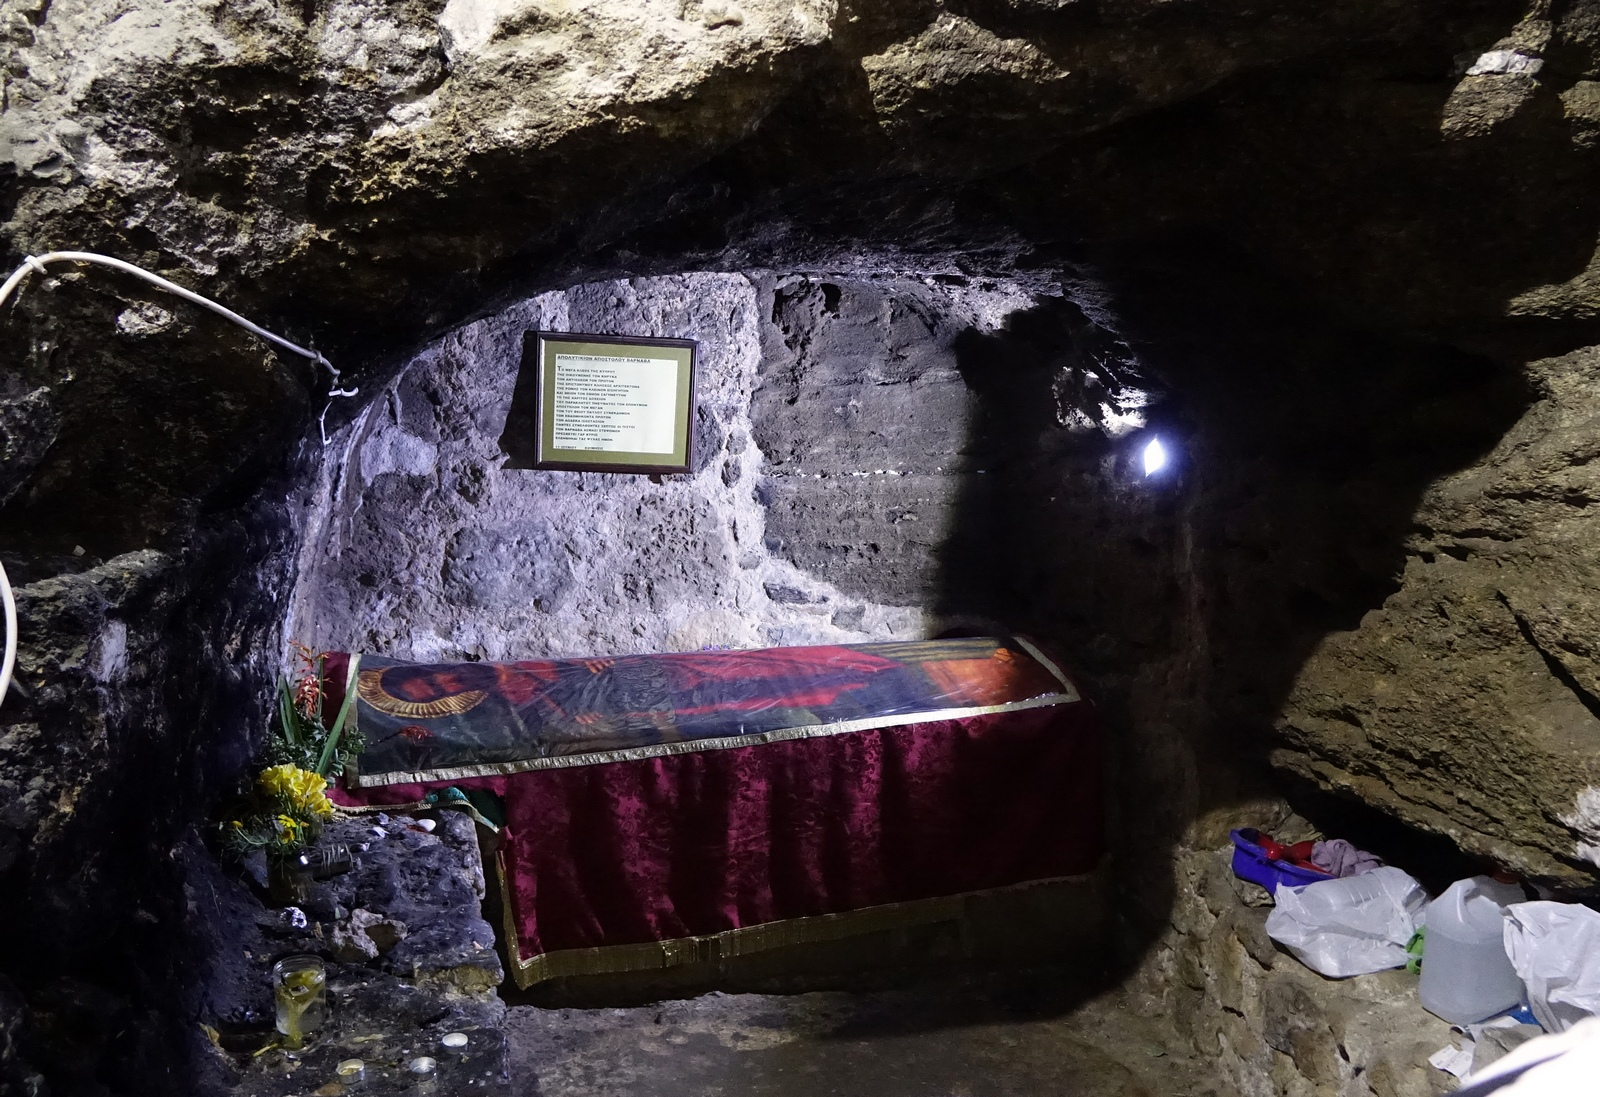 The cave of Apostle Barnaba close to St. Barnaba monastery on occupied aries